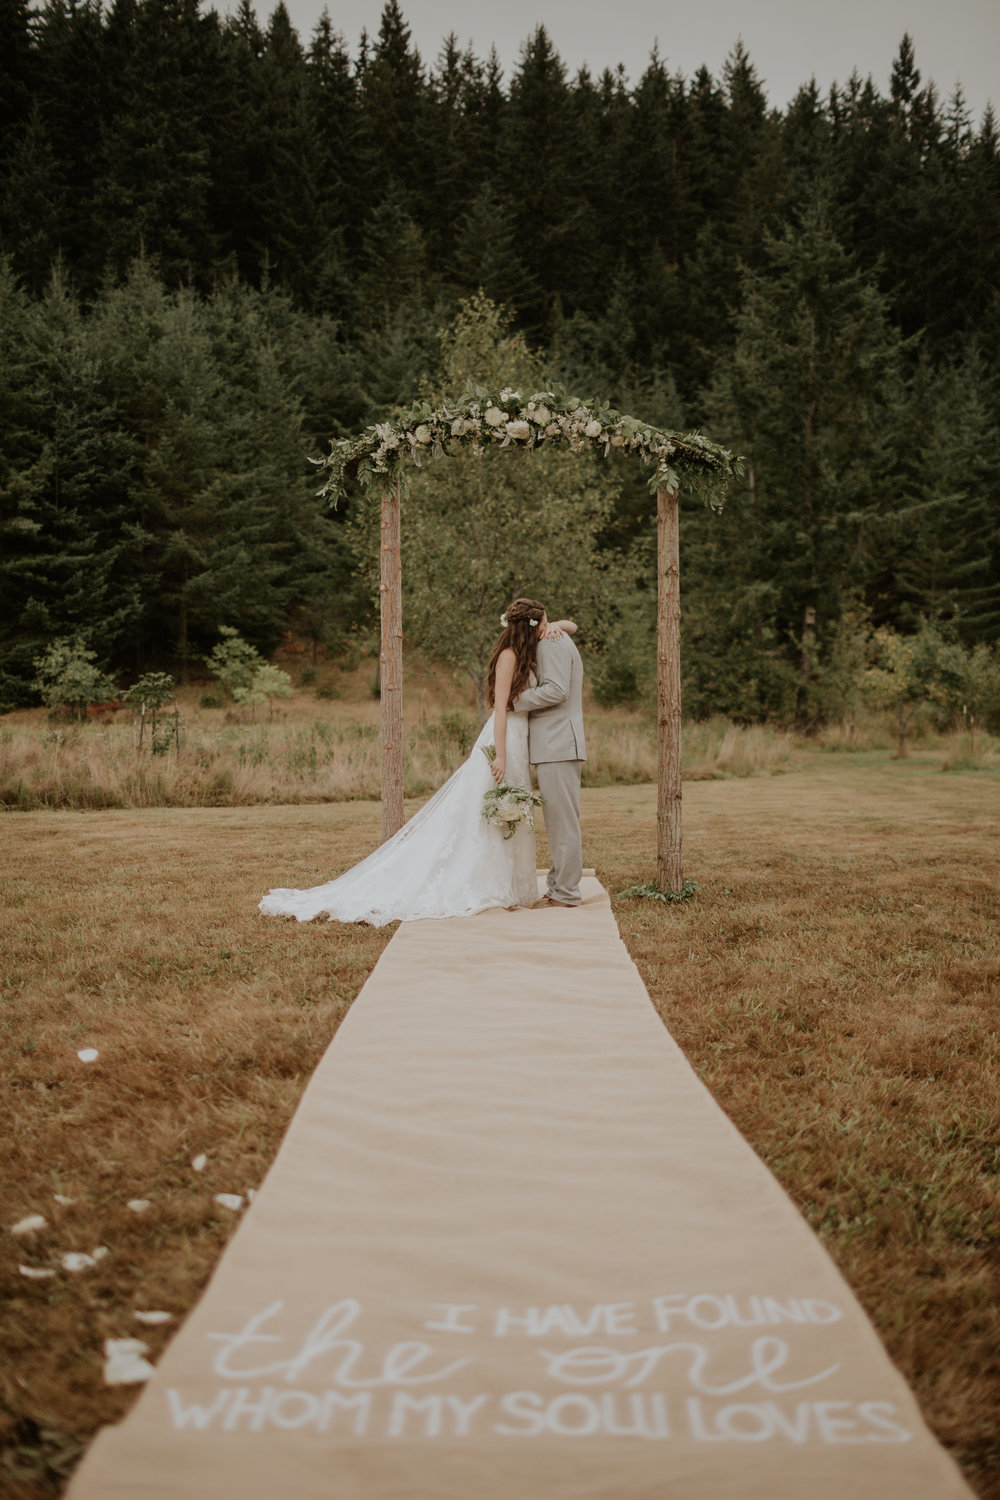 Port-Angeles-elopement-wedding-pnw-olympic-peninsula-photographer-portrait-kayladawnphoto-kayla-dawn-photography-olympic-national-park-175.jpg